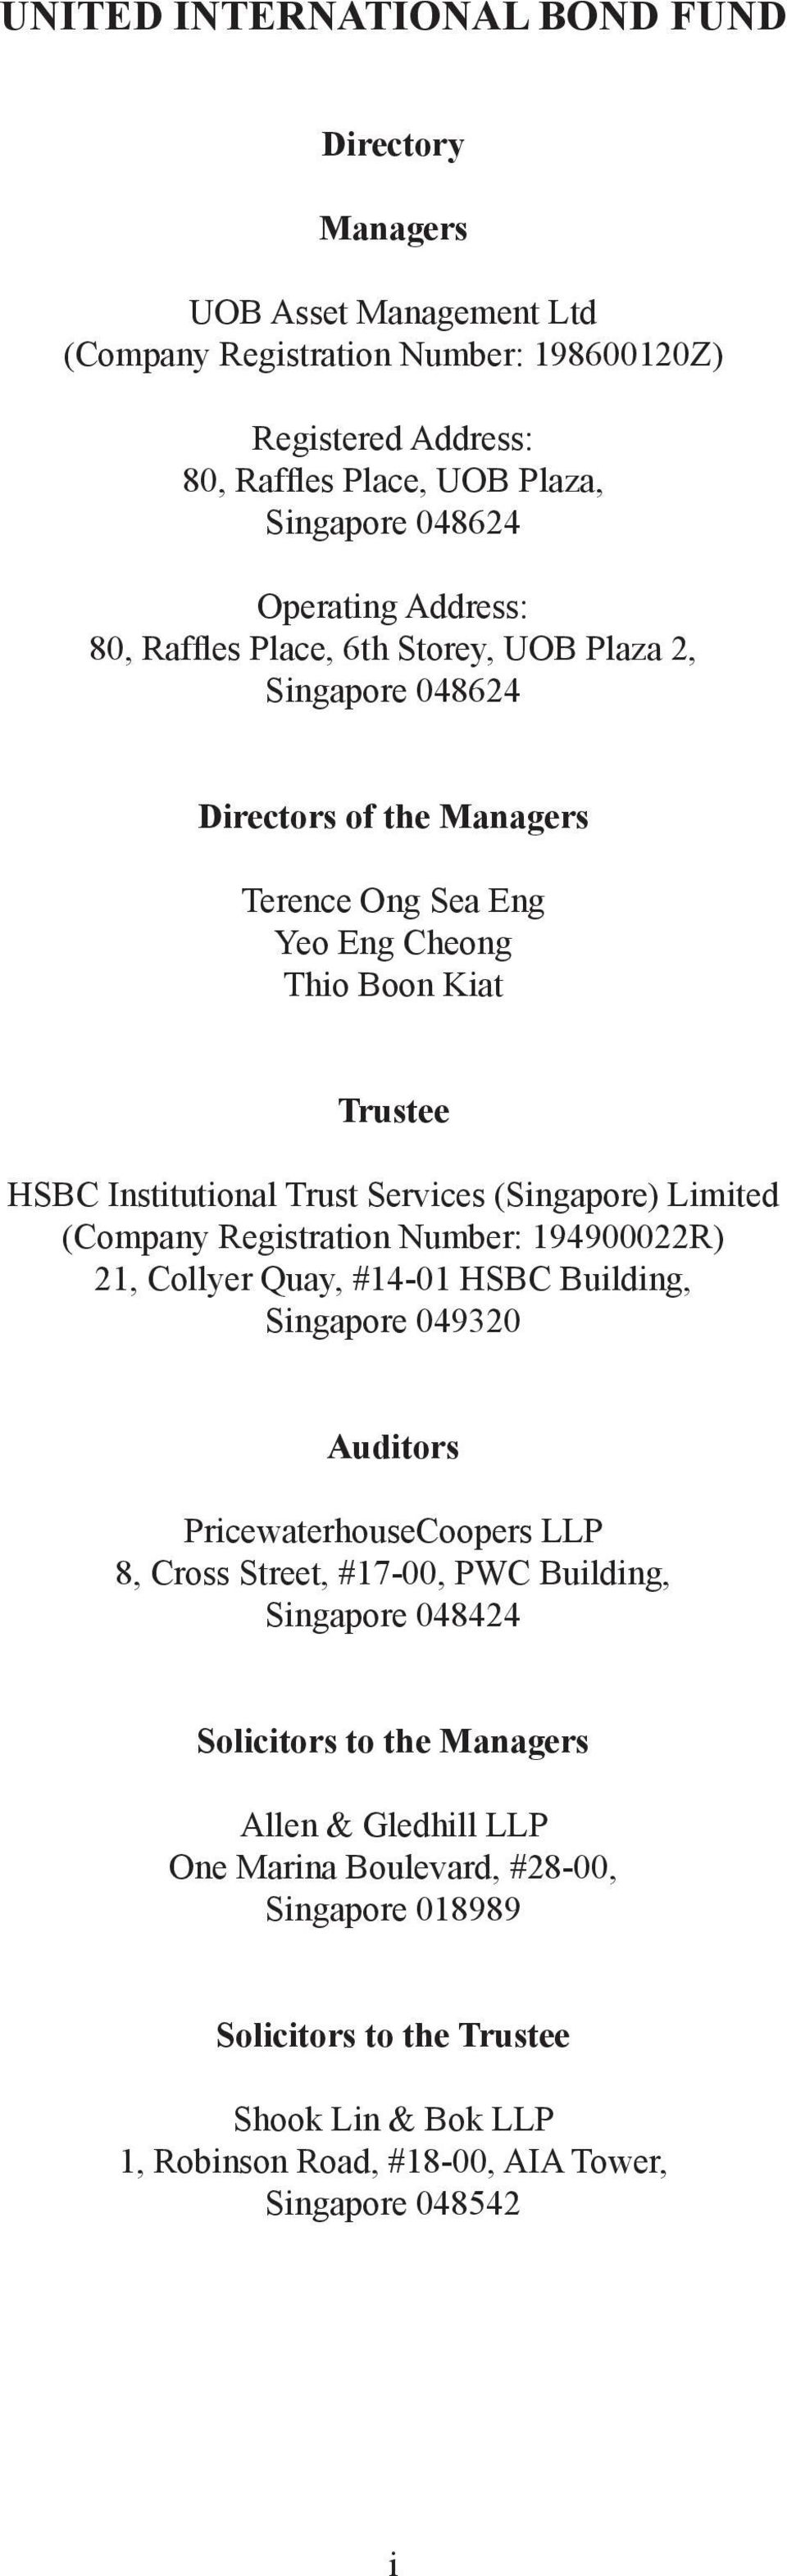 (Singapore) Limited (Company Registration Number: 194900022R) 21, Collyer Quay, #14-01 HSBC Building, Singapore 049320 Auditors PricewaterhouseCoopers LLP 8, Cross Street, #17-00, PWC Building,